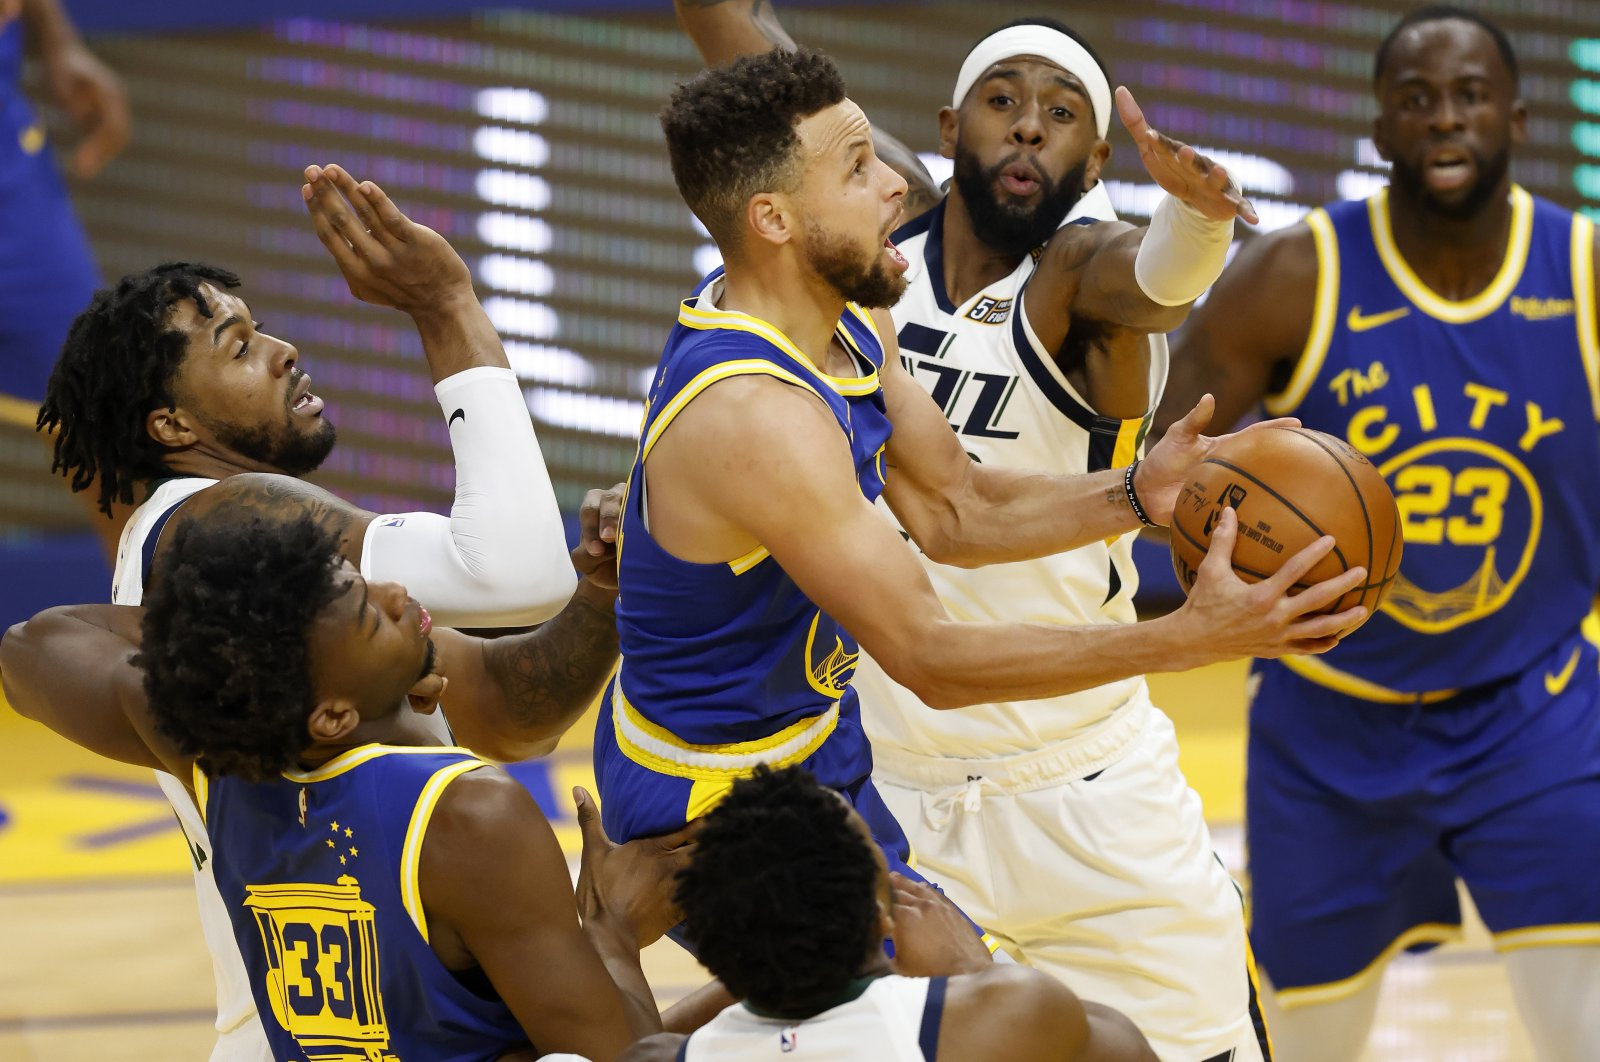 Golden State Warriors guard Stephen Curry (C) goes to the basket as Utah Jazz guard Jordan Clarkson (2nd R), Utah Jazz center Derrick Favors (L) and Utah Jazz guard Donovan Mitchell defend during an NBA game at Chase Center in San Francisco, California, March 14, 2021. (EPA Photo)